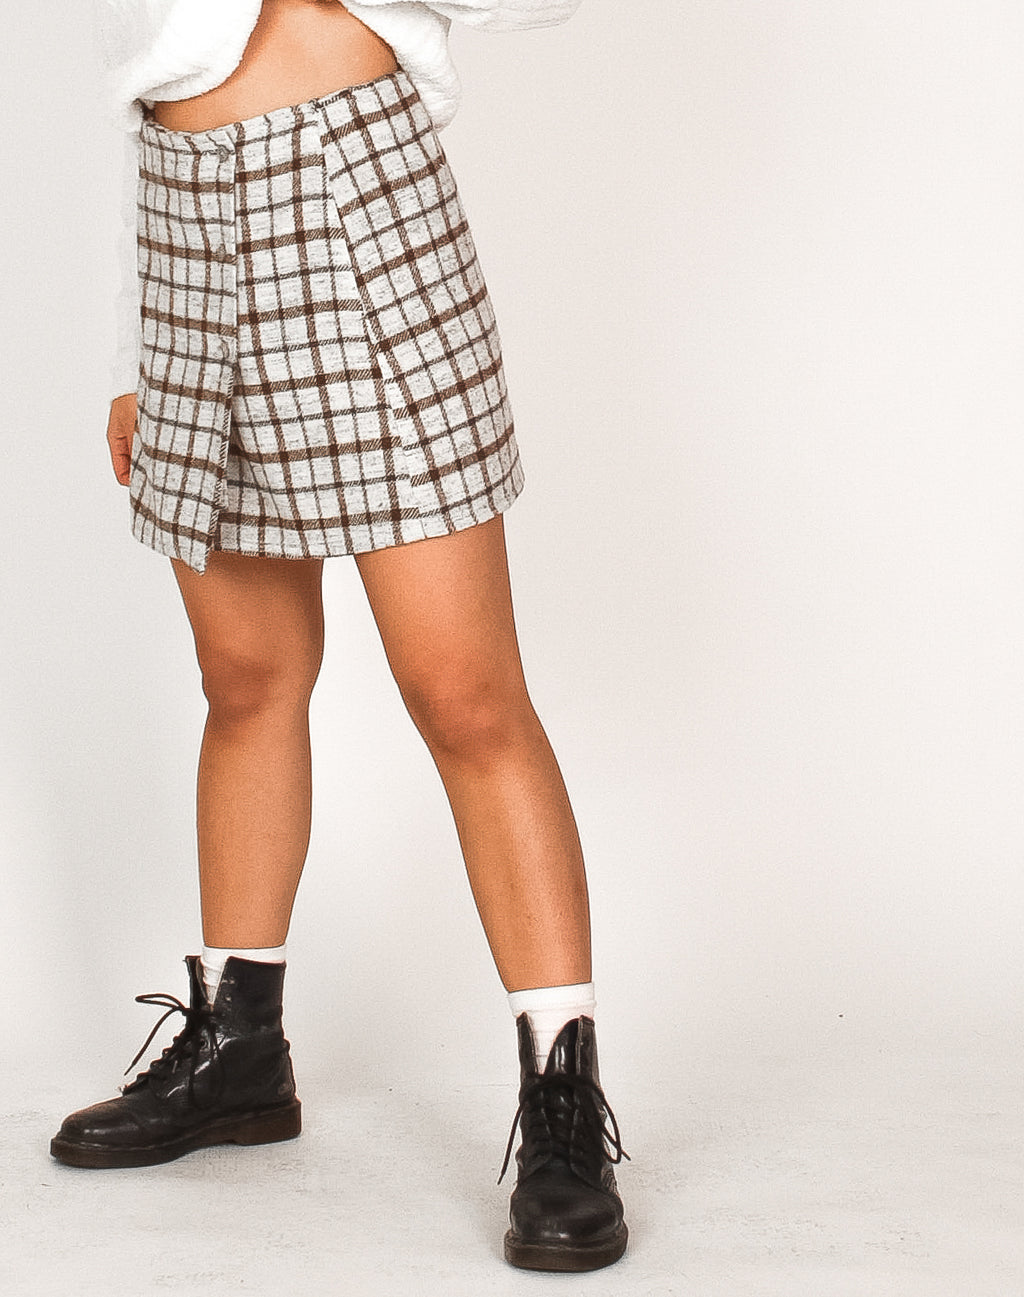 WHITE TARTAN MINI SKIRT